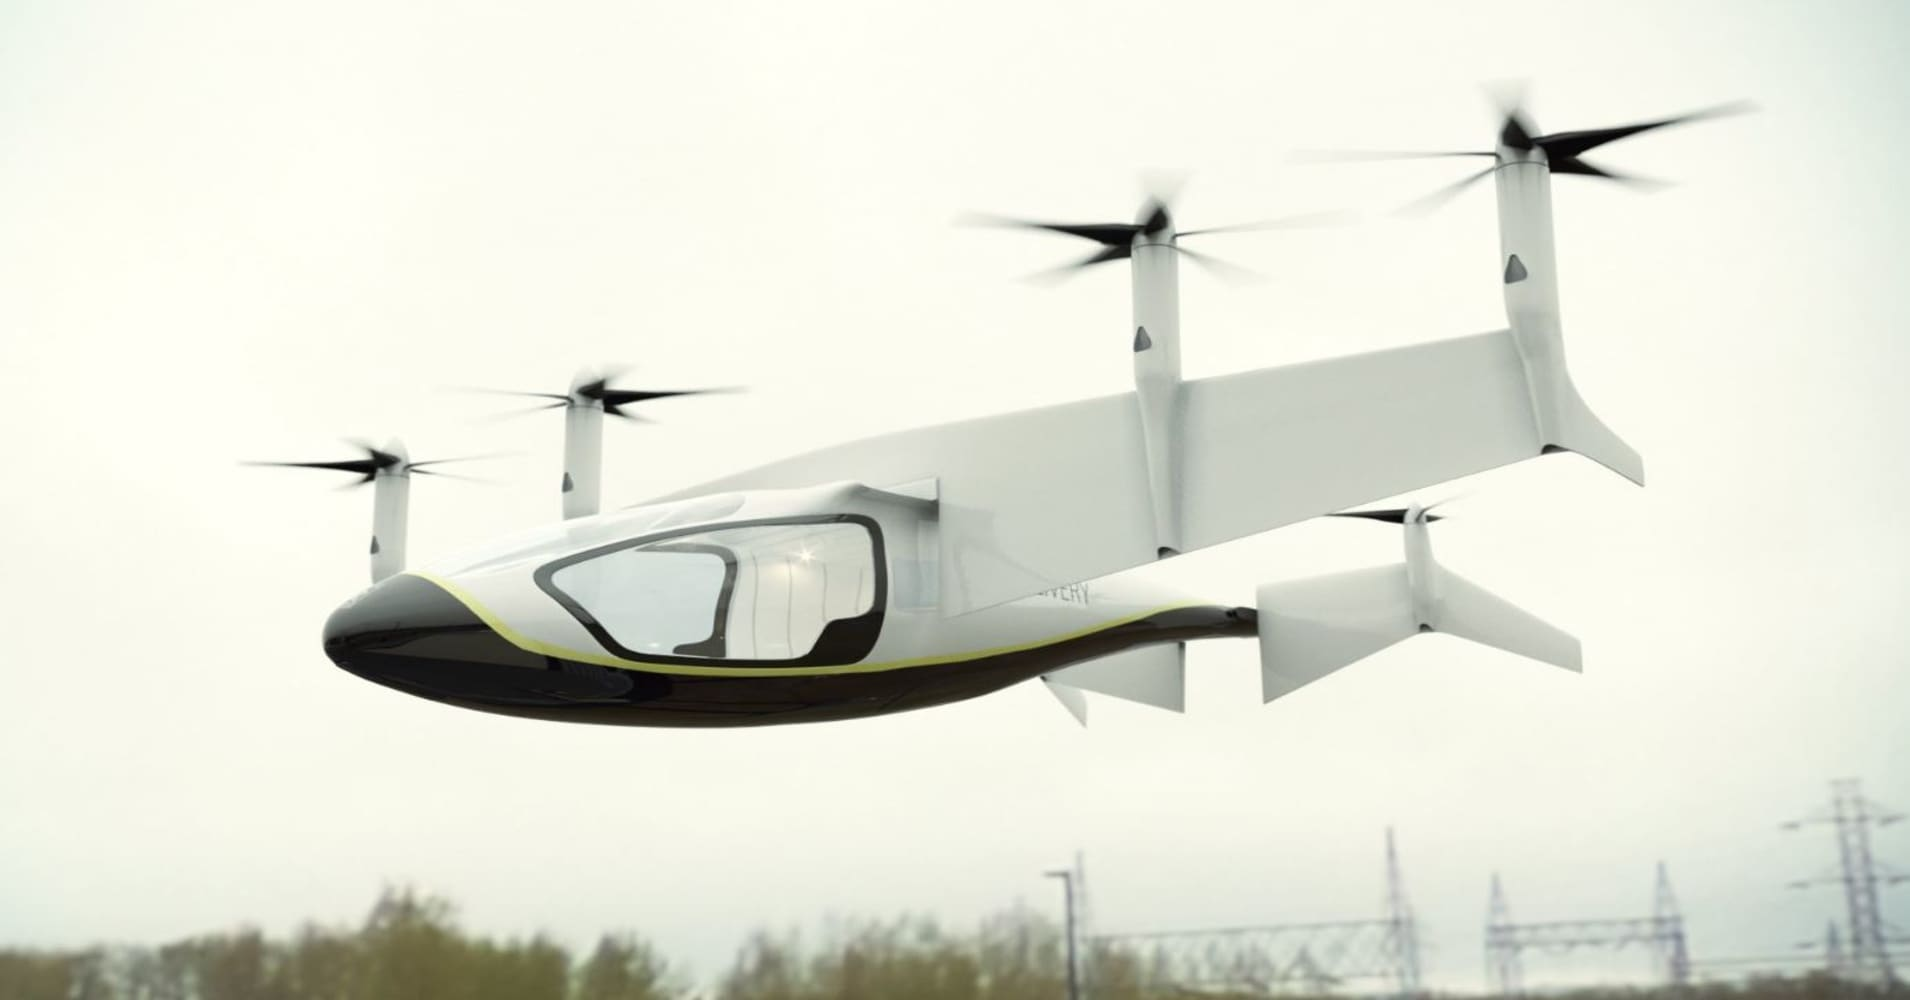 Rolls-Royce joins the race to develop a flying taxi